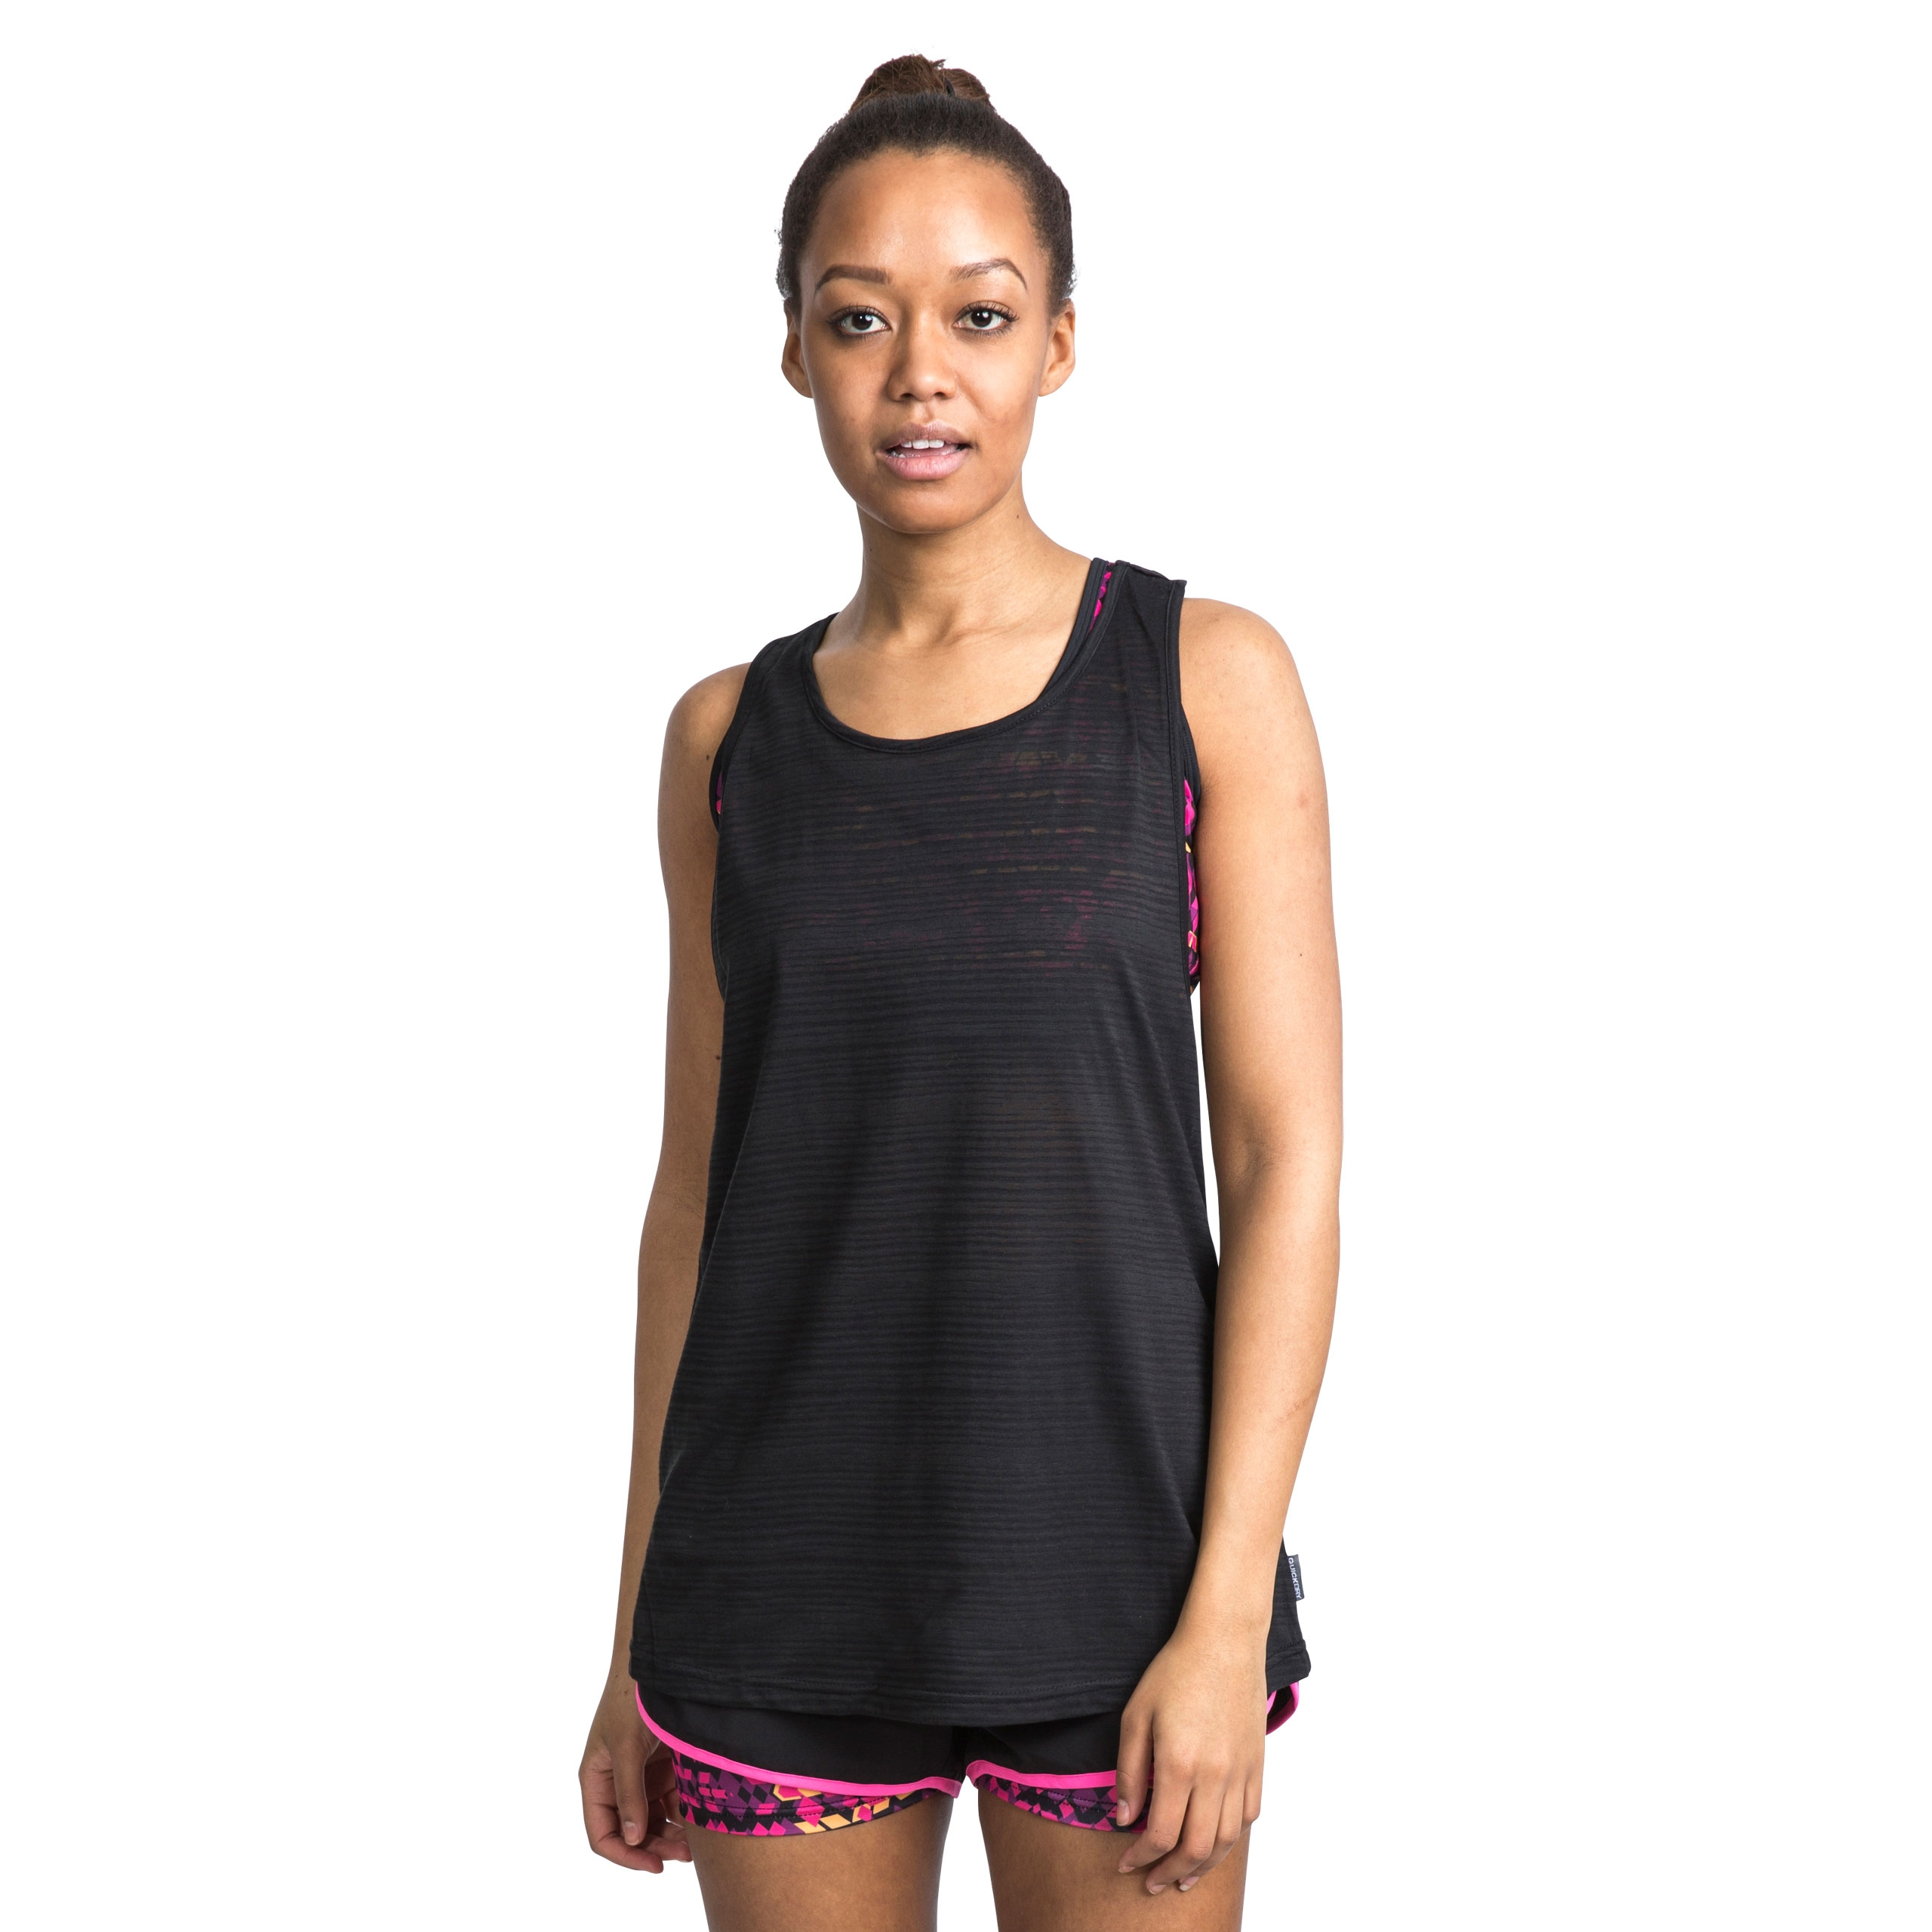 Kaylee Womens Sleeveless Active T-shirt